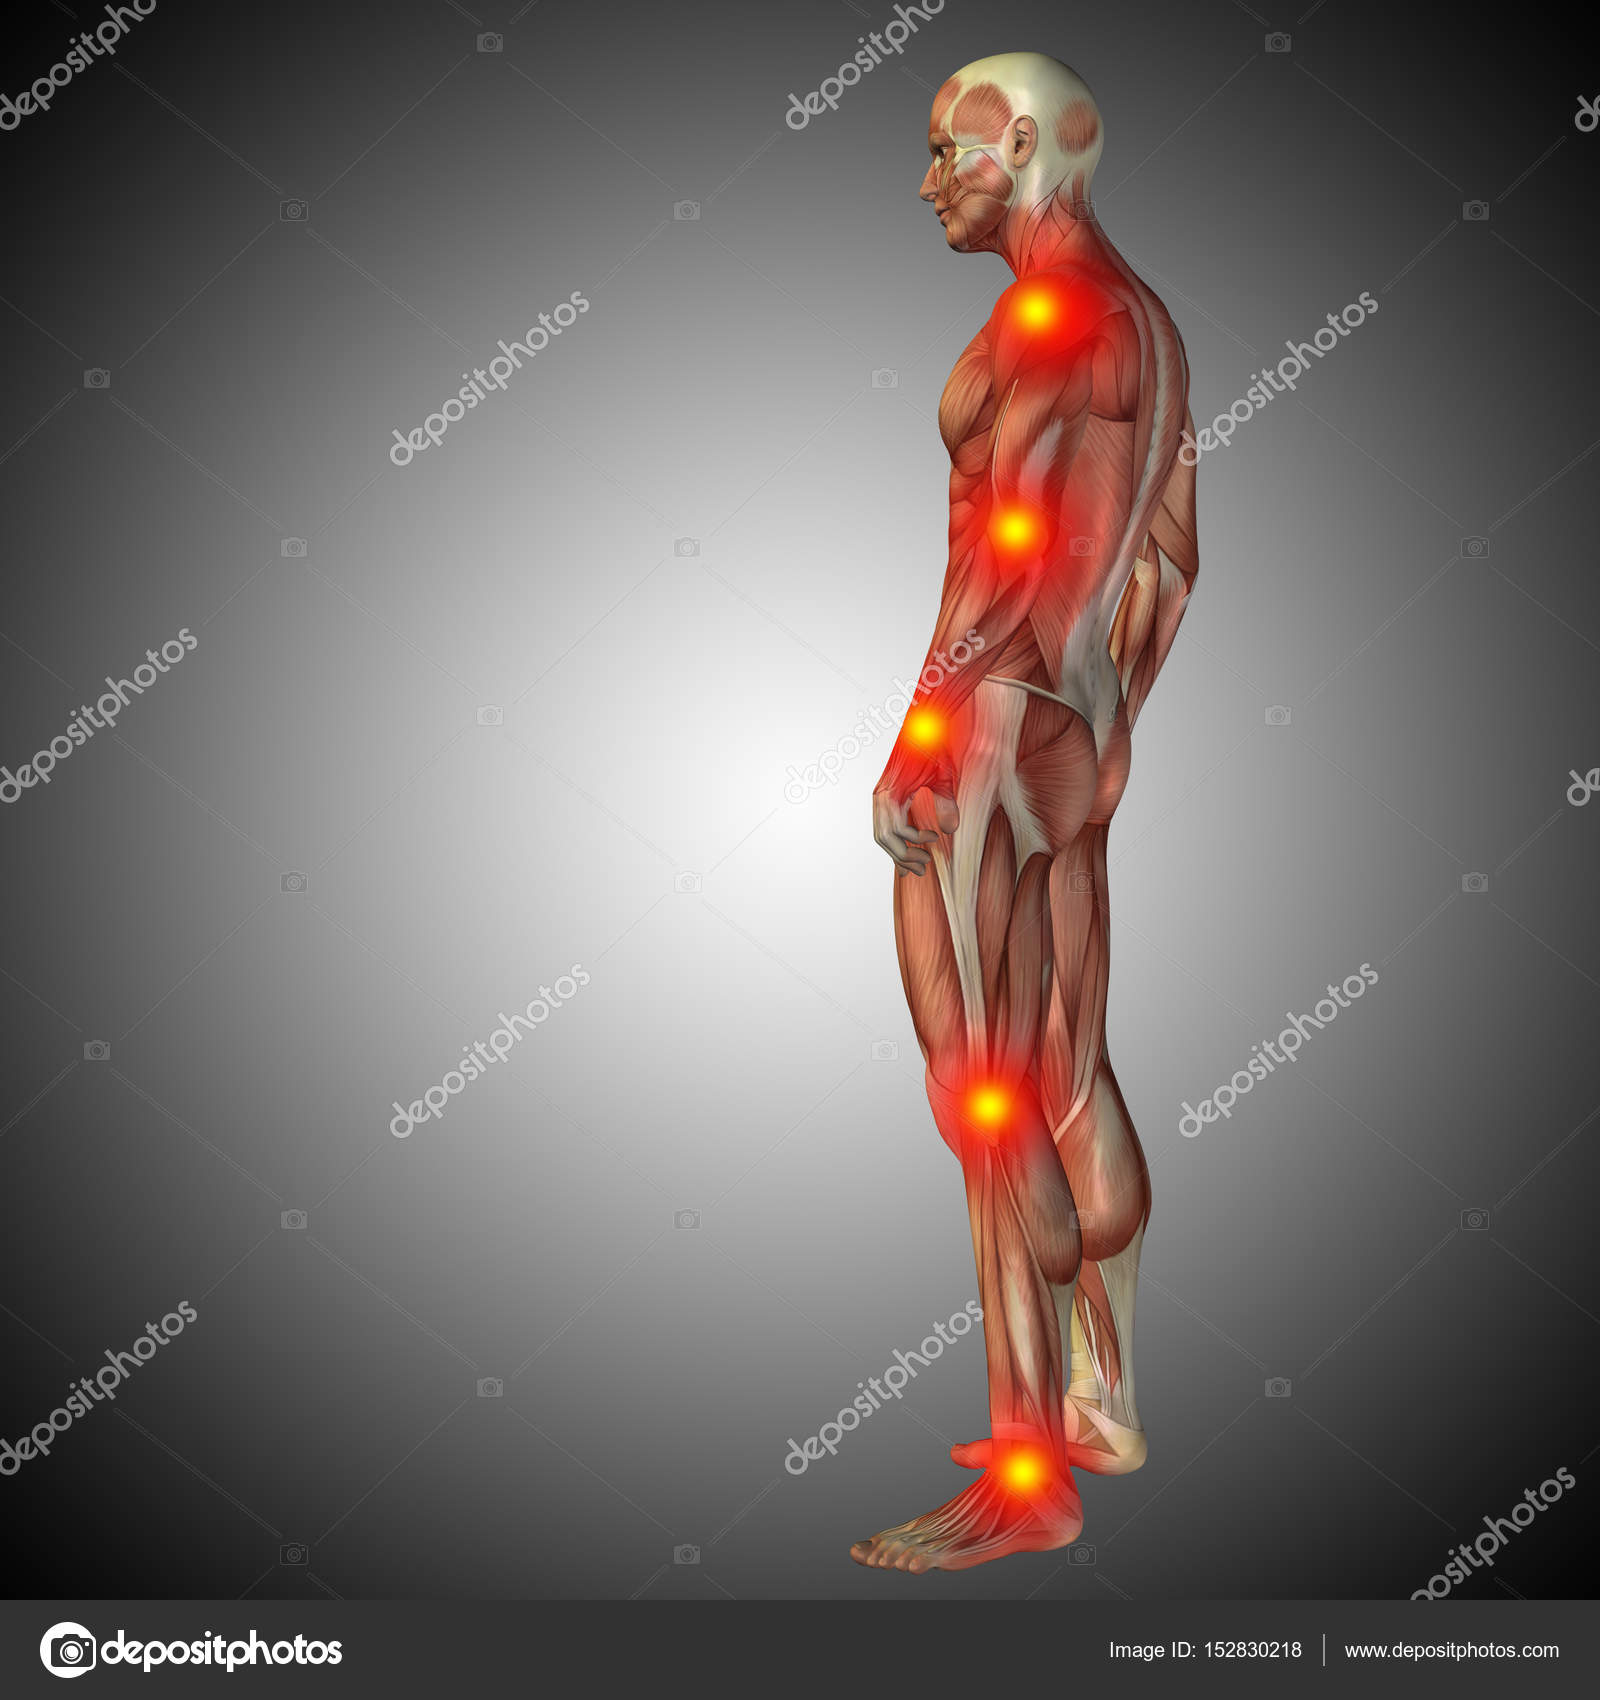 human body anatomy with pain signs — Stock Photo © design36 #152830218